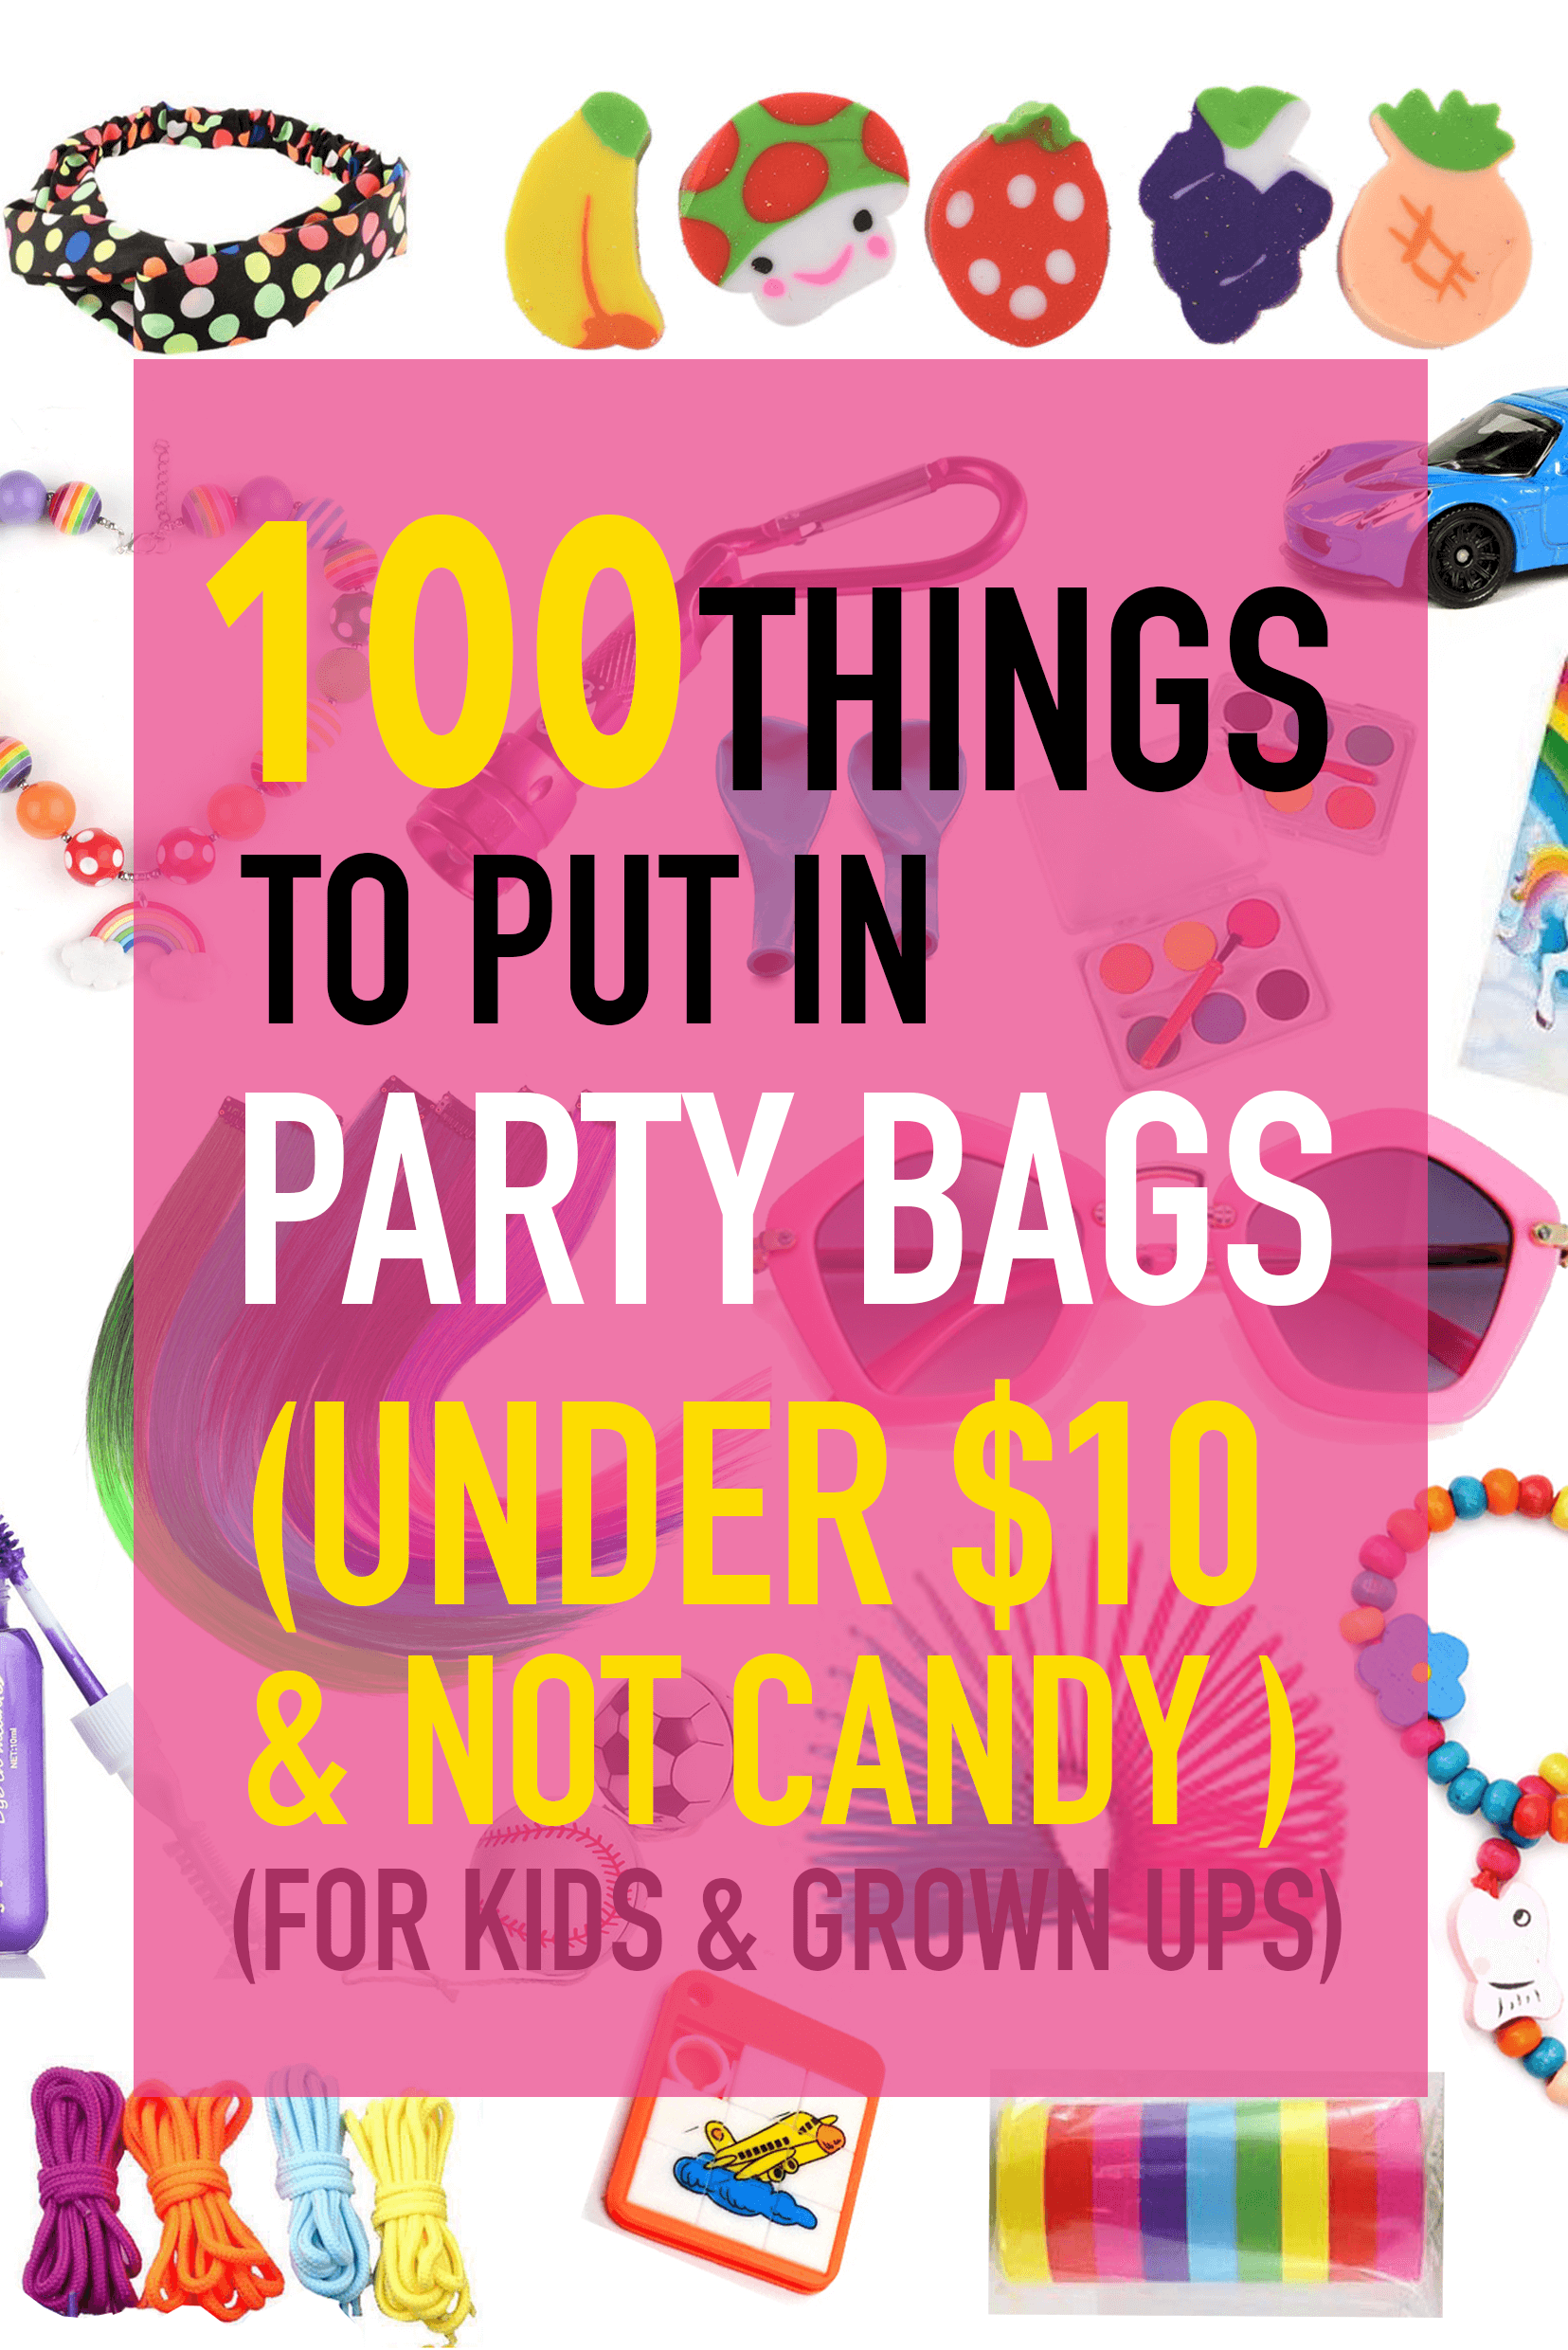 Party Bag Ideas For Kids Loot Stocking Fillers Bags Teens Hens Night Favour Baby Shower Grown Up